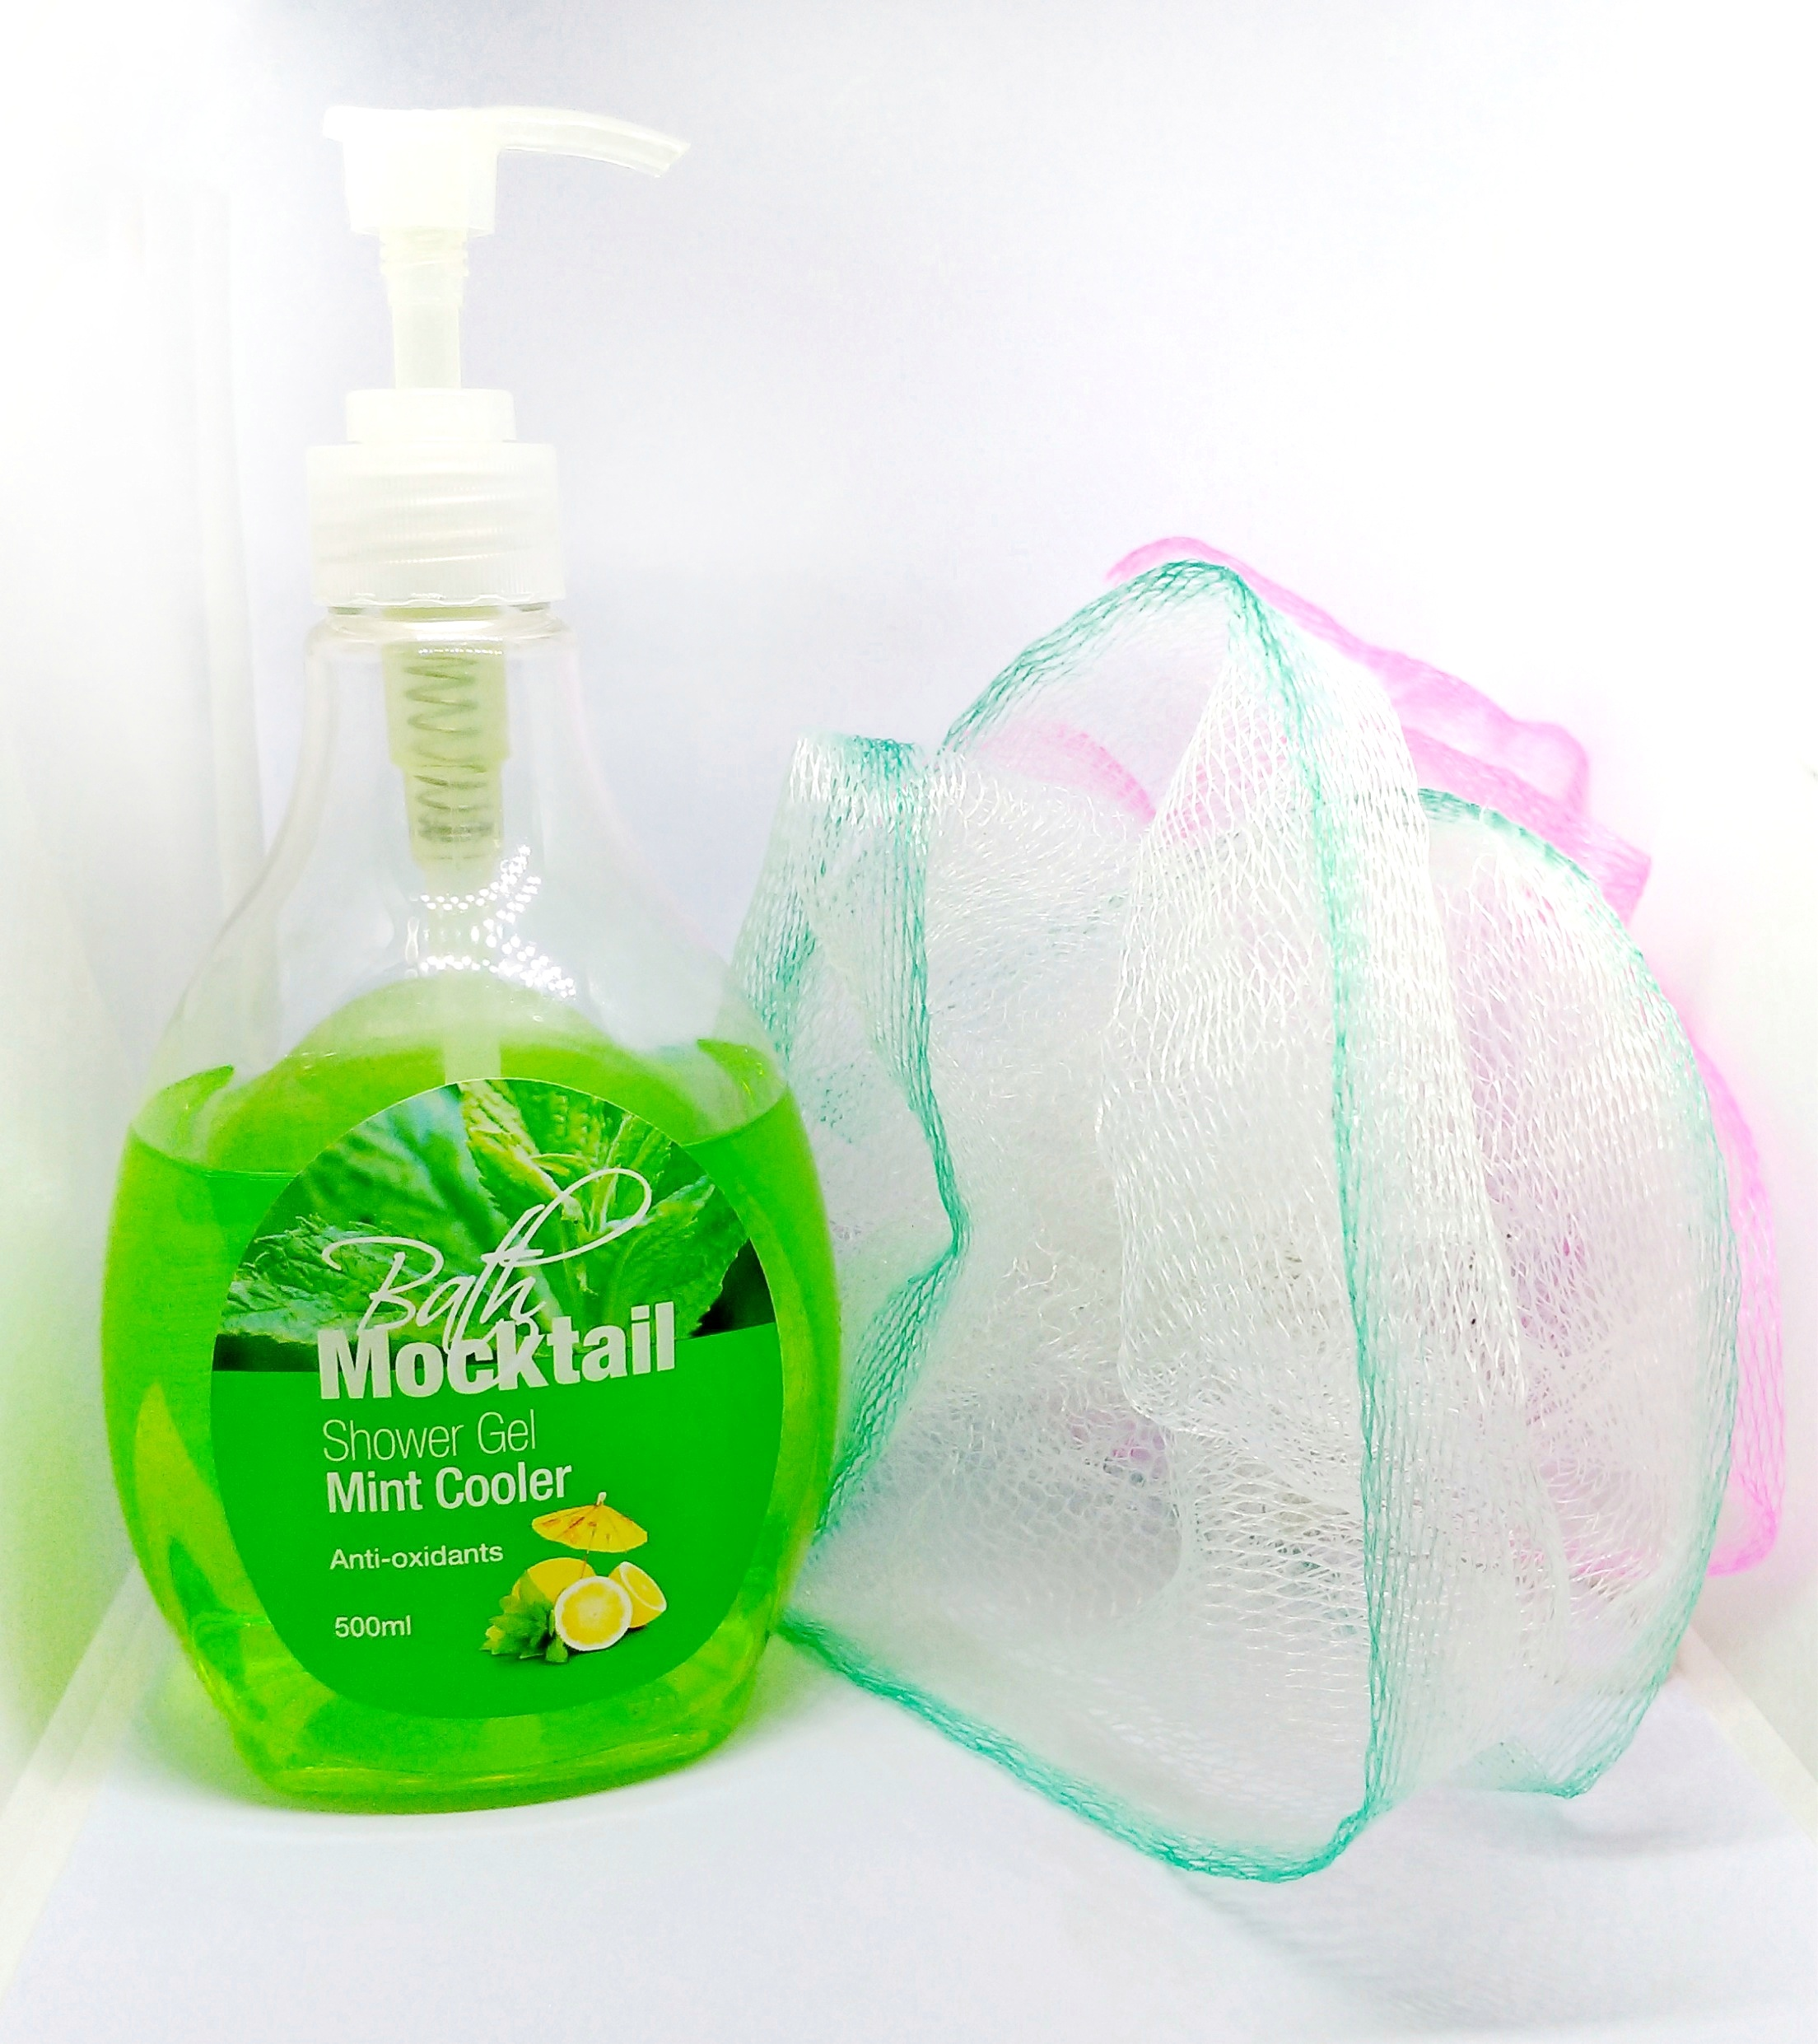 BATH MOCKTAIL Shower Gel Mint Cooler